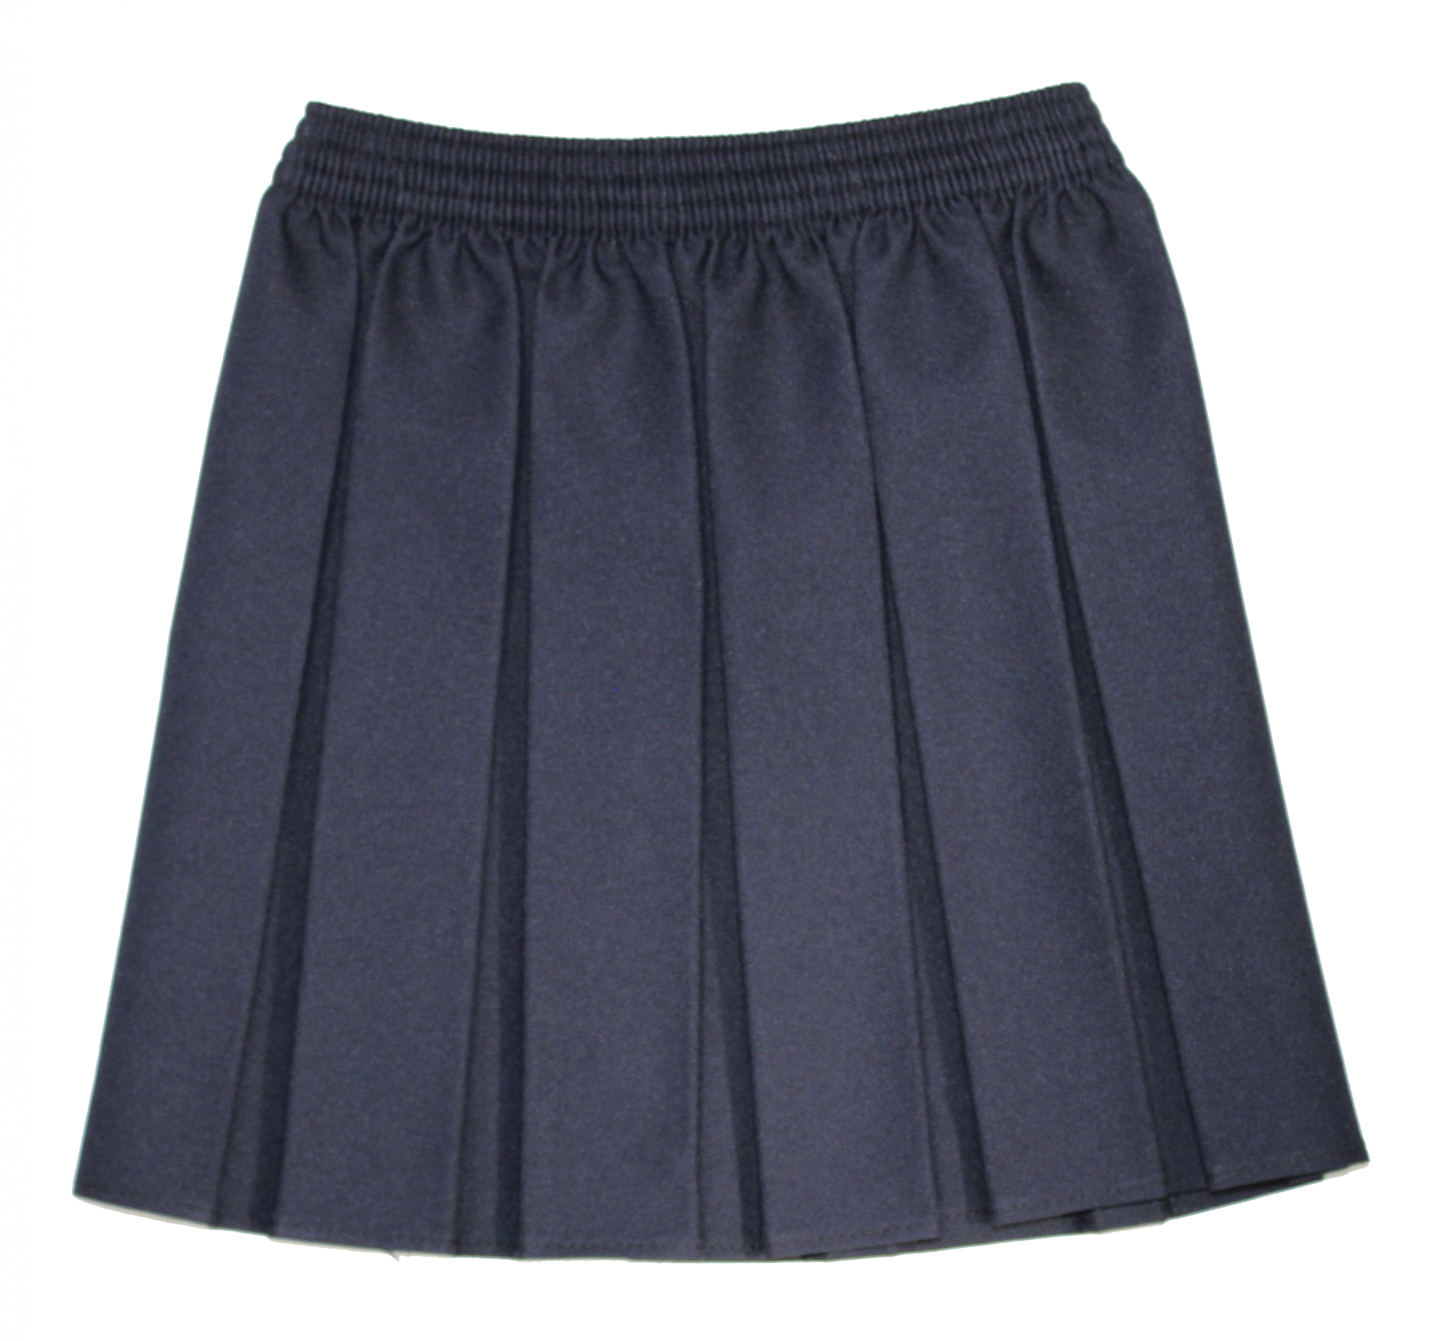 Home Browse All Girls School Uniform Girls School Skirts Box Pleat Skirts. Grey Box Pleat Skirt. Navy Box Pleat Skirt. Price: £ Black Box Pleat Skirt. Price: £ Sign up for our newsletter to get our latest offers. How can we help? Help; Where is my order.